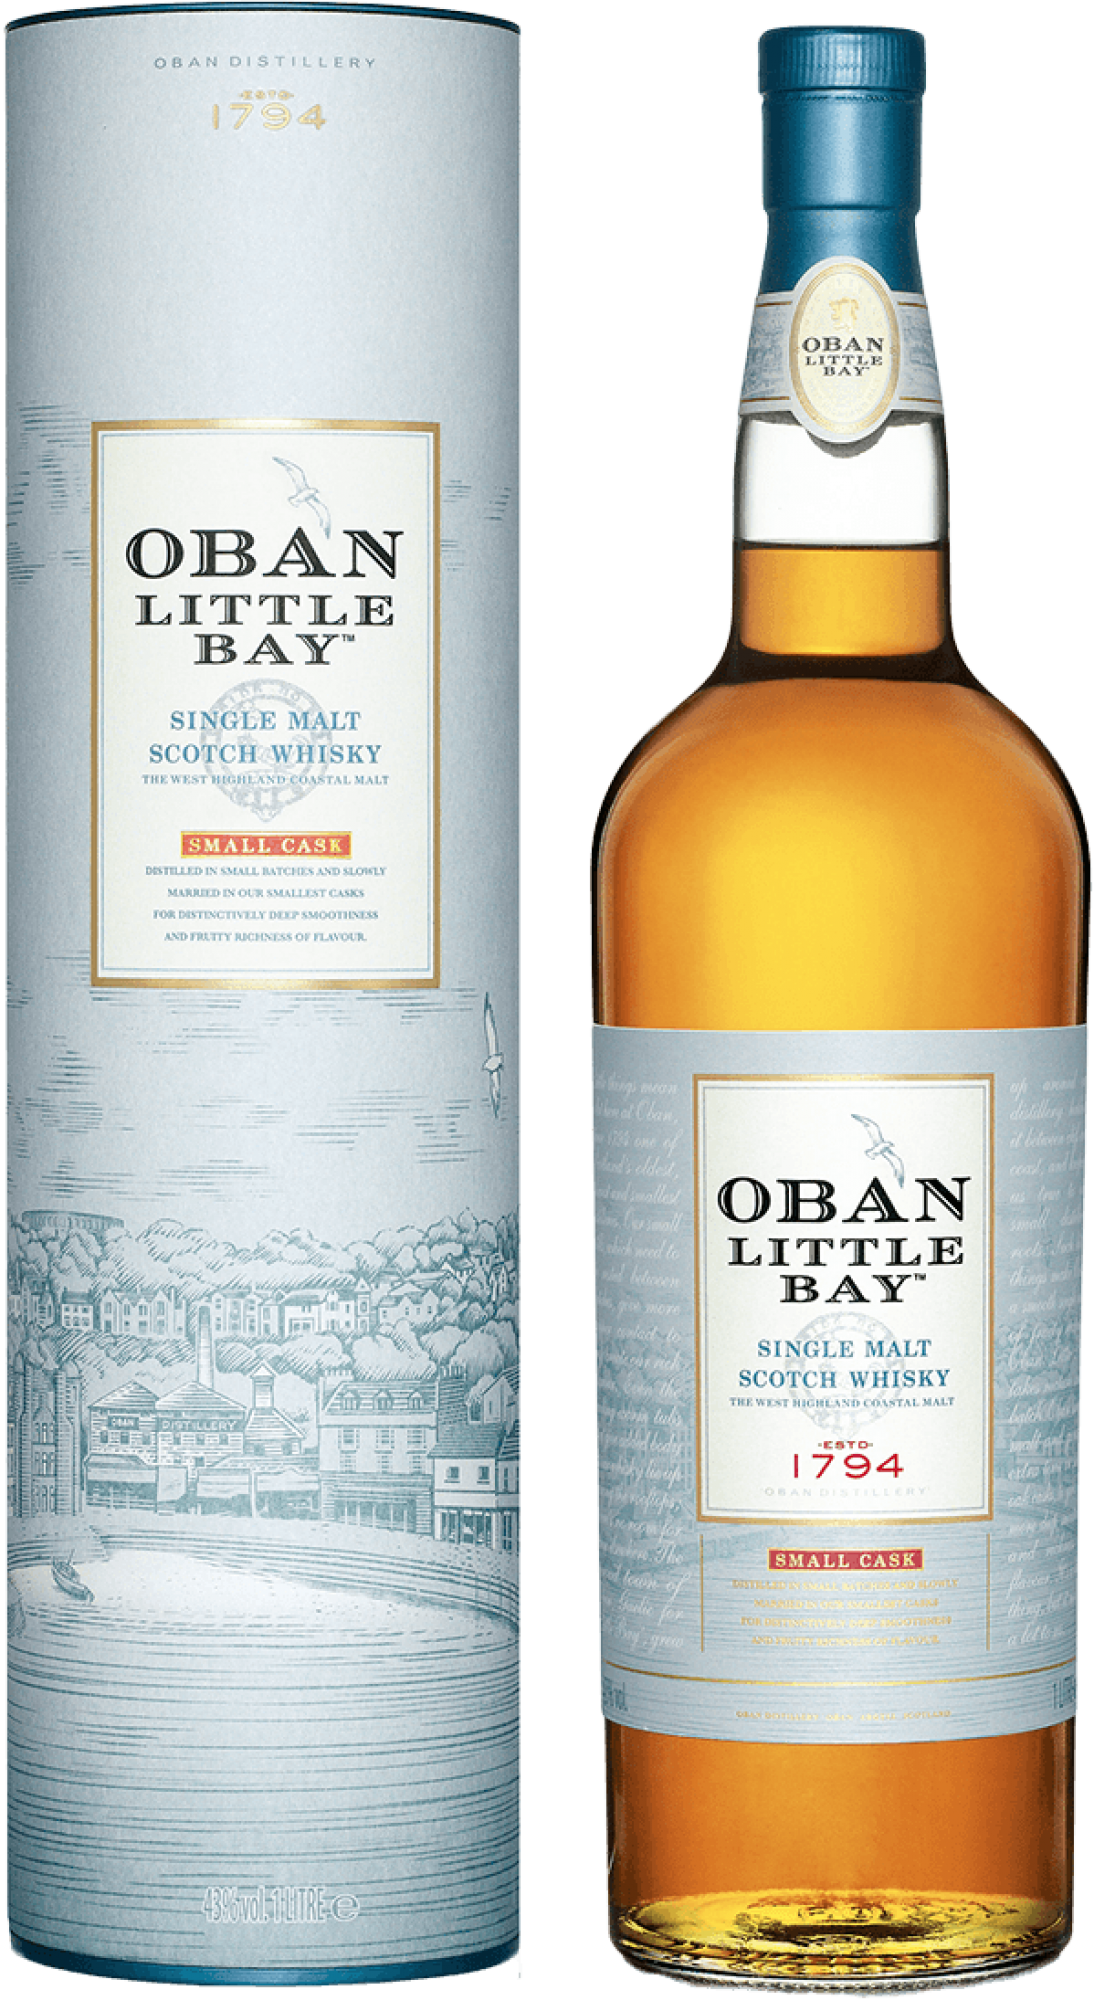 Oban Little Bay Scotch Whiskey